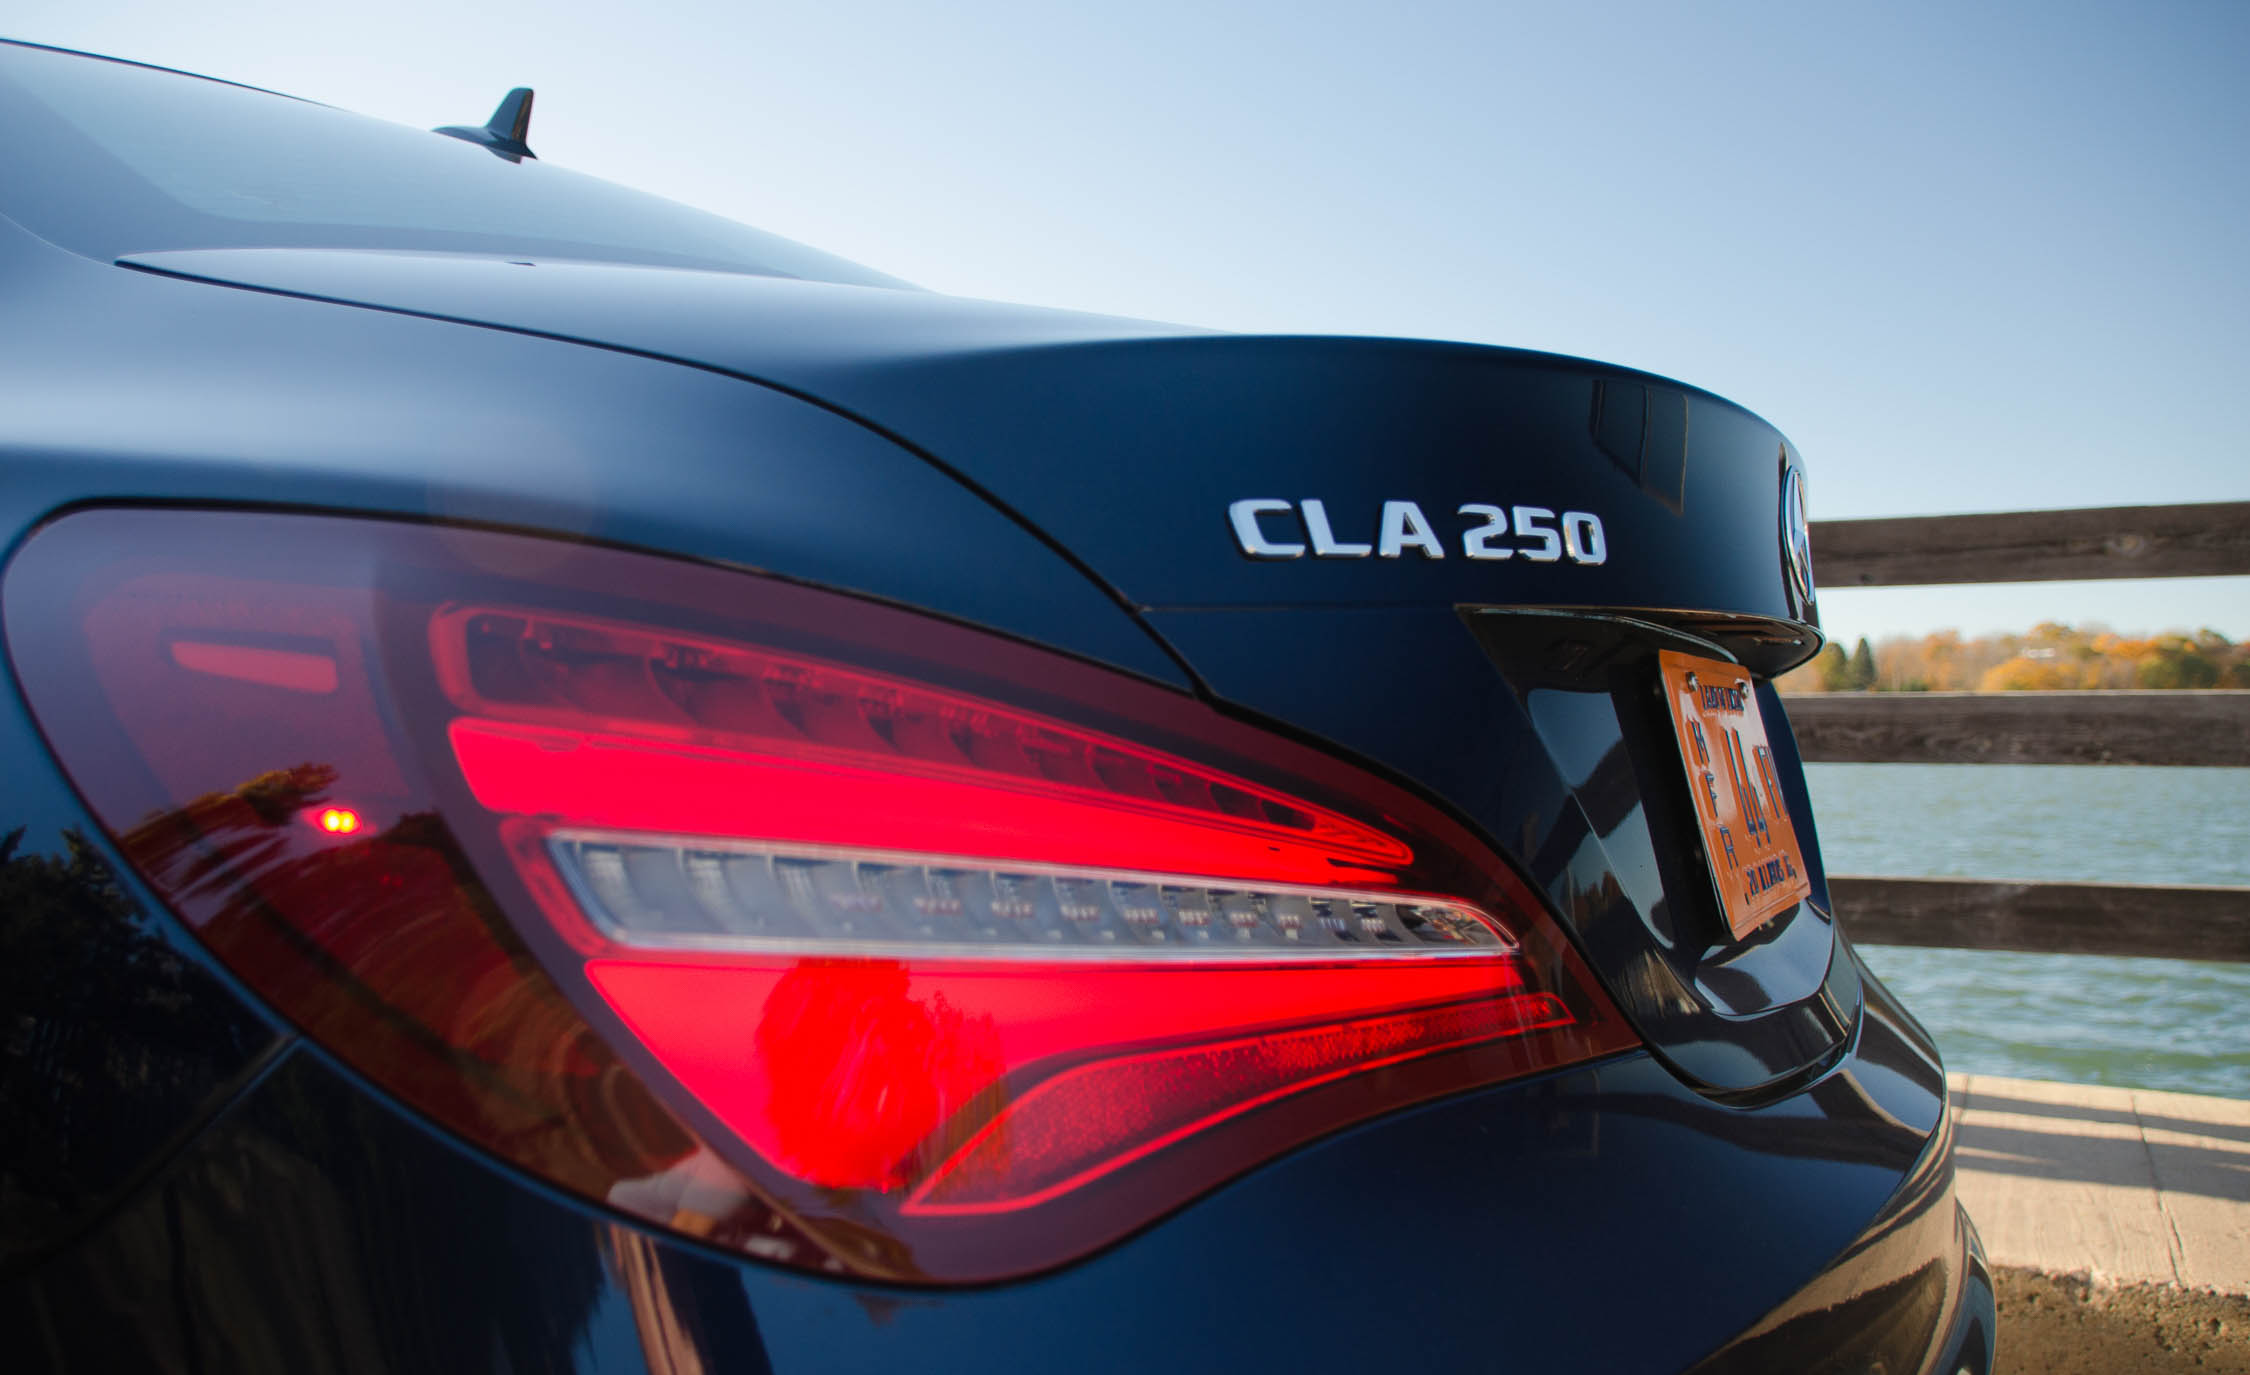 2017 Mercedes Benz CLA250 4MATIC Exterior View Taillight (Photo 9 of 21)